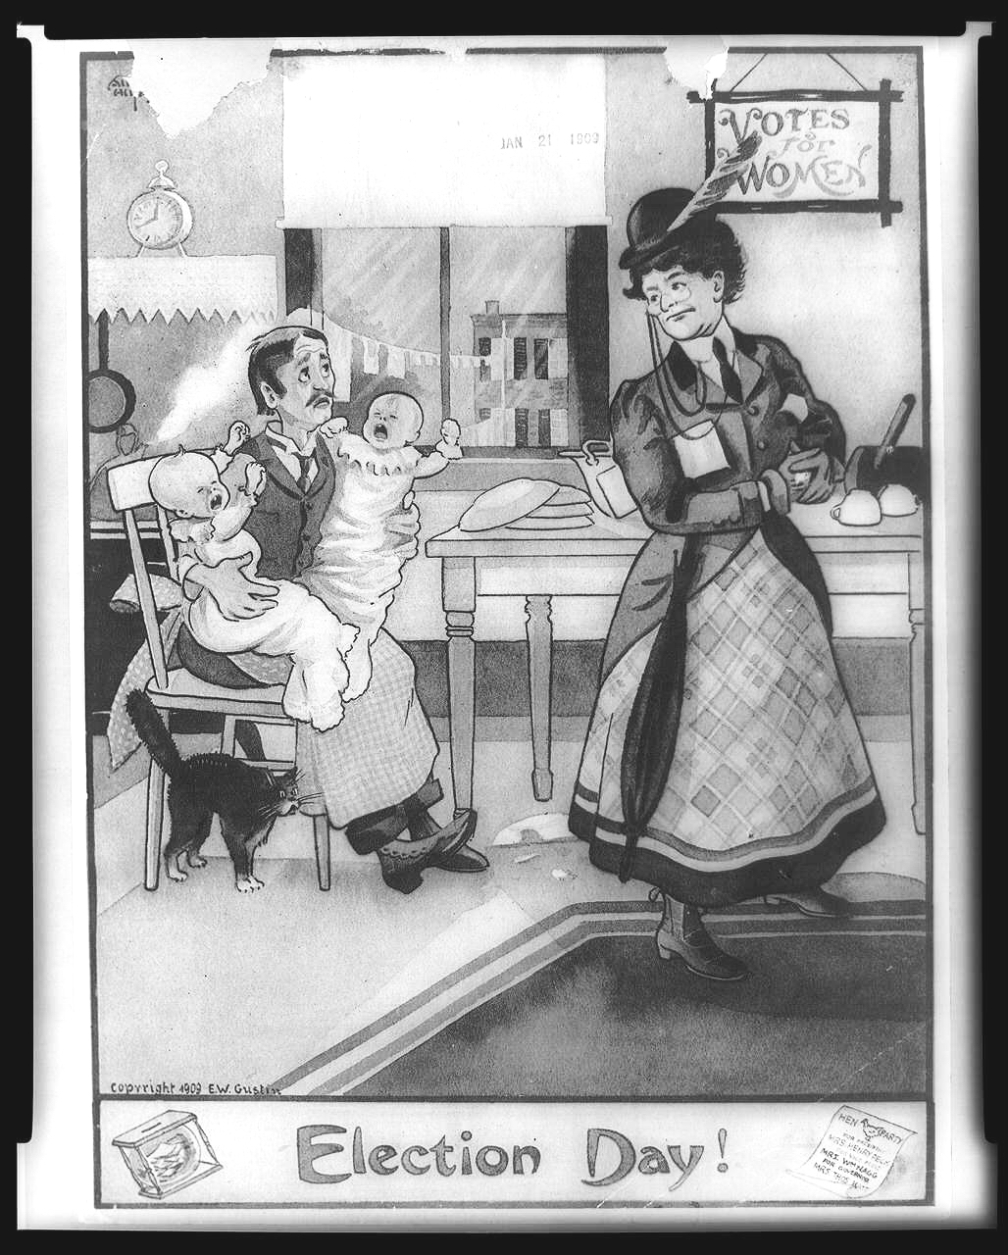 WOMEN'S SUFFRAGE CARTOON